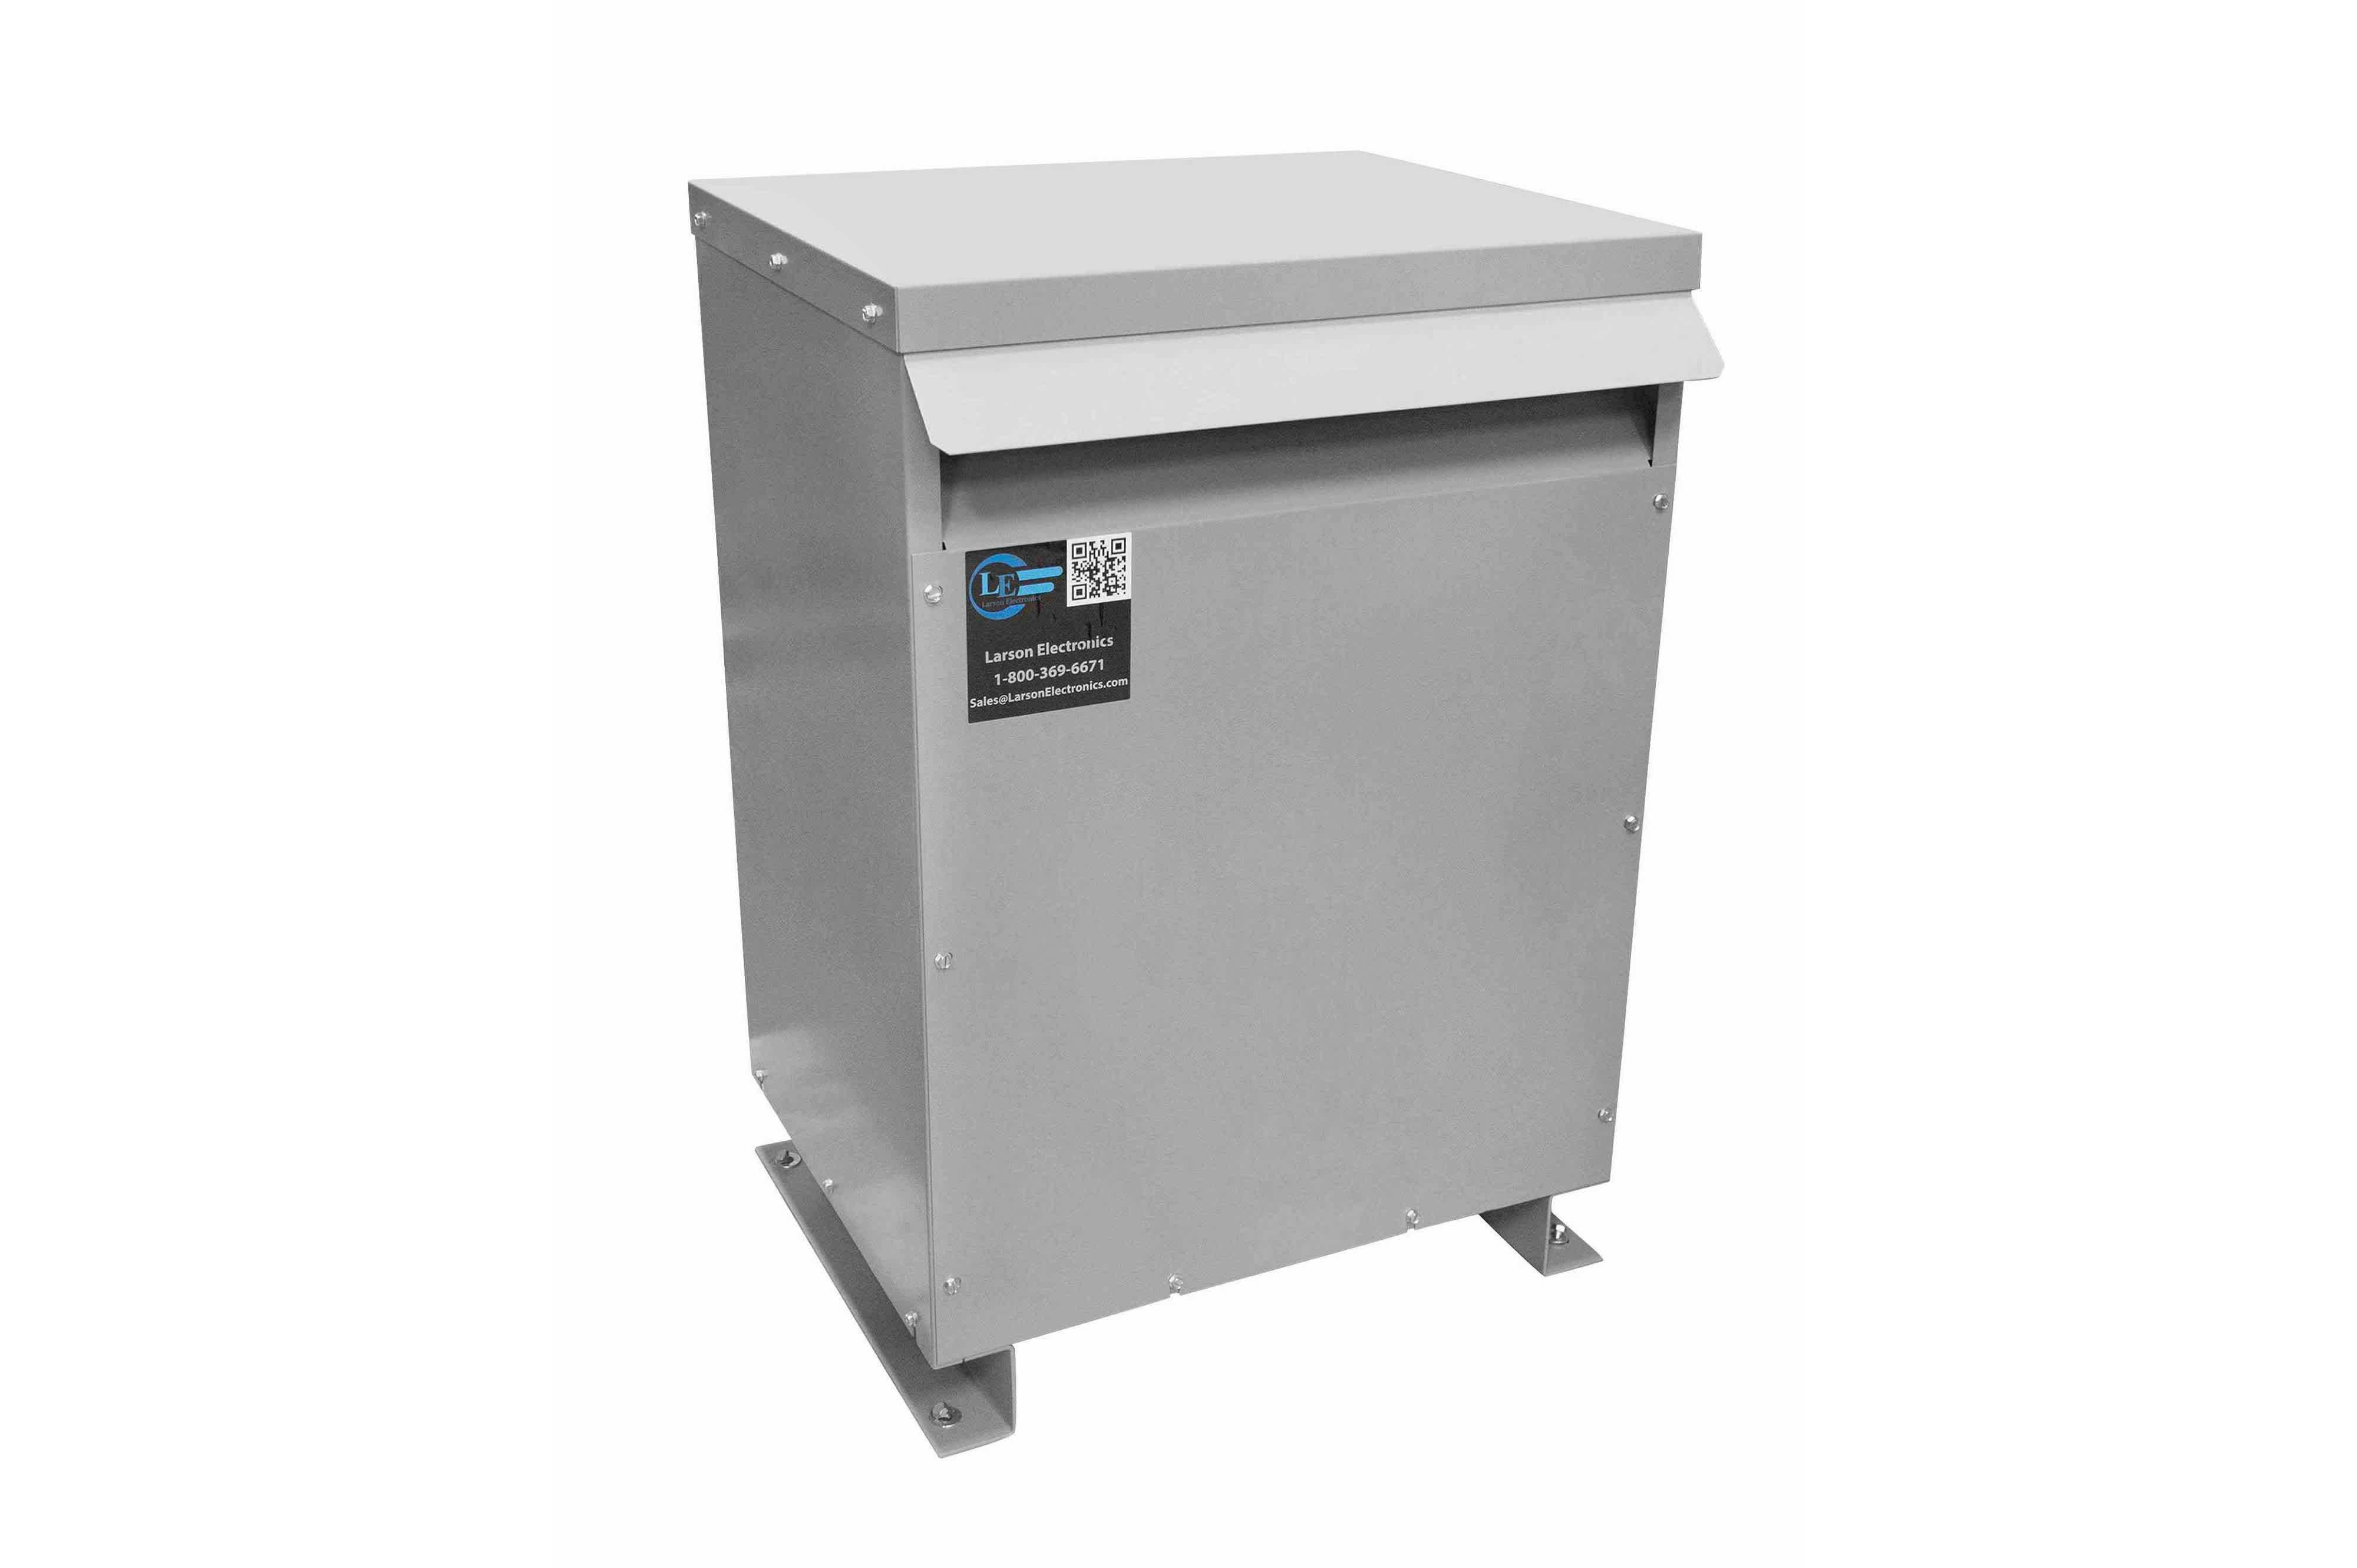 225 kVA 3PH Isolation Transformer, 460V Wye Primary, 400Y/231 Wye-N Secondary, N3R, Ventilated, 60 Hz